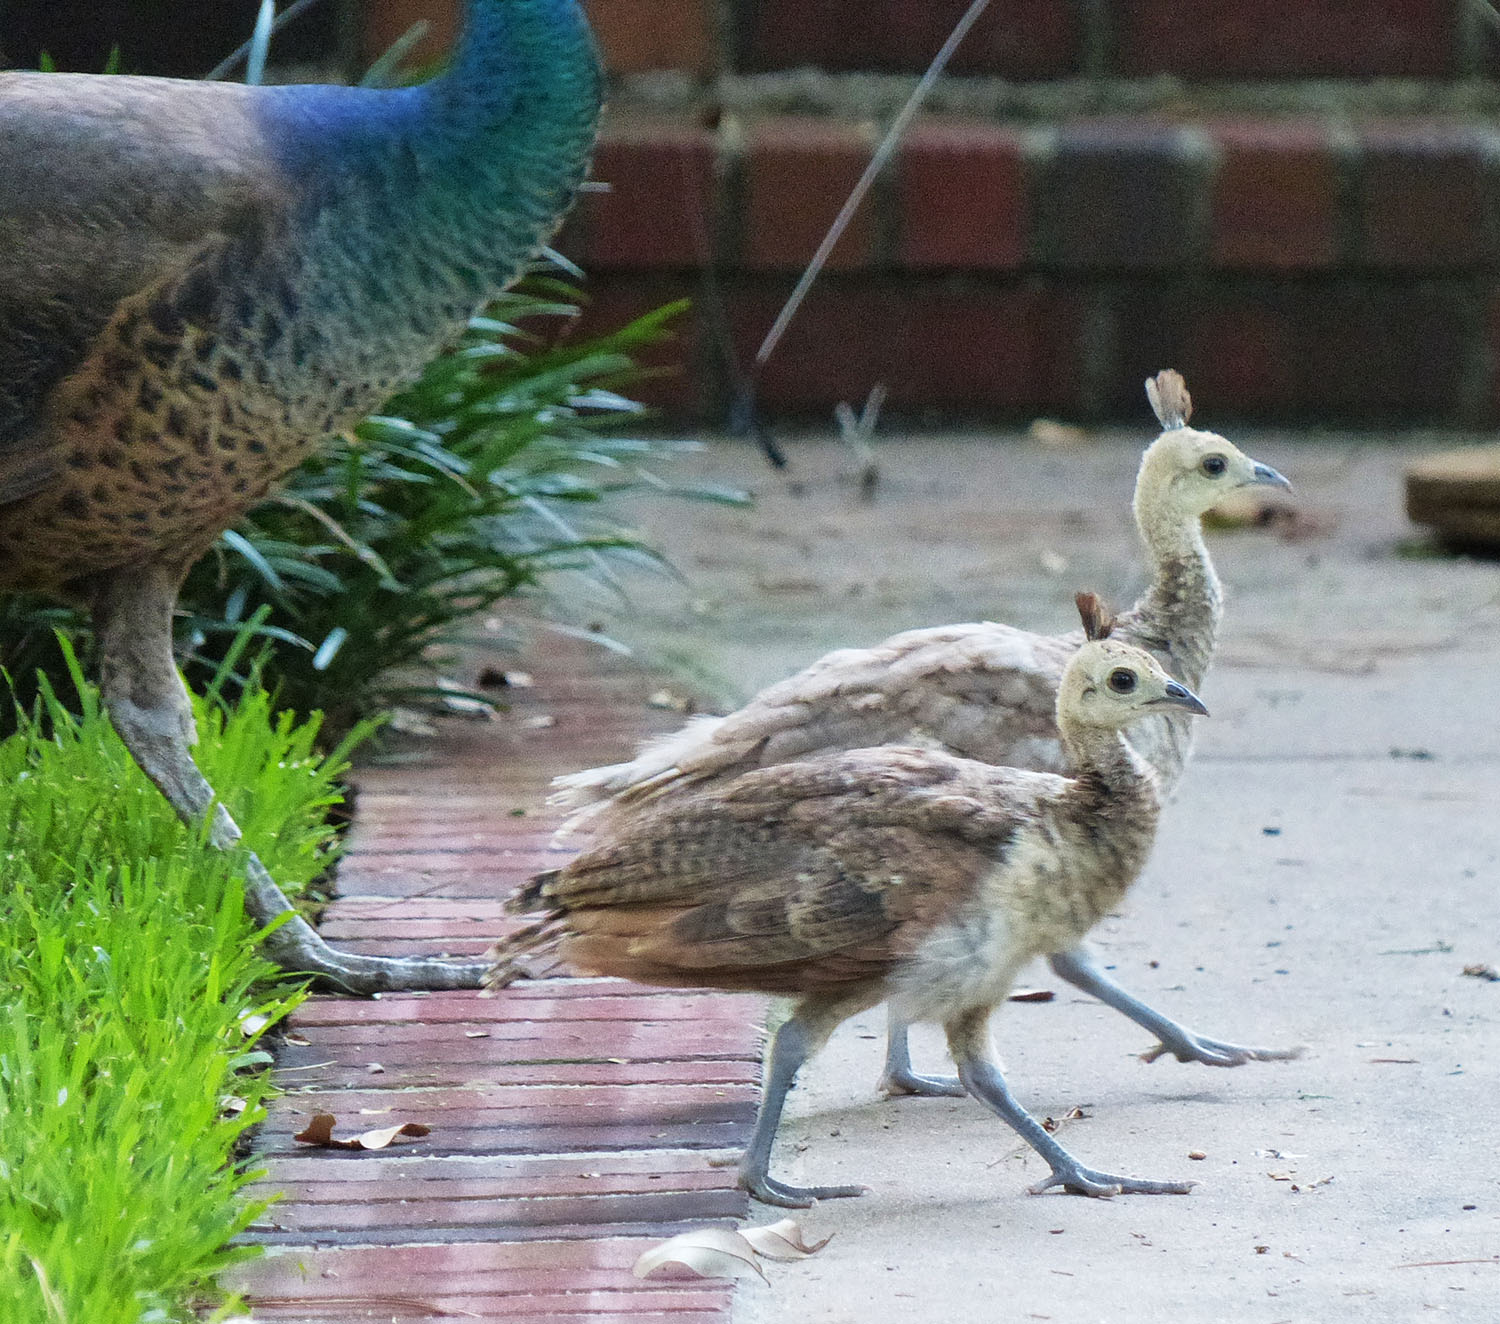 Two peachicks and a peahen